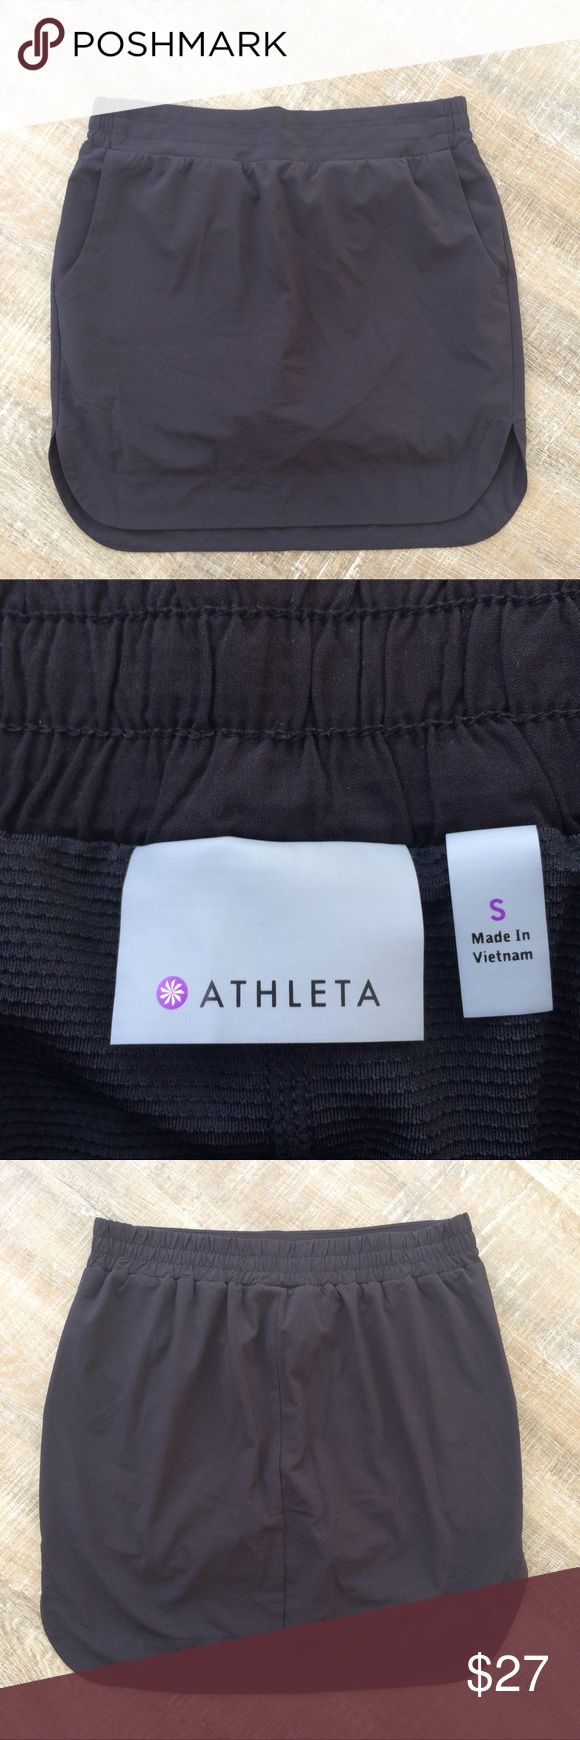 Athleta athletic skirt with mesh lining A year-round athletic staple! Athleta workout skirt with mesh lining. Size Small. Please ask any questions! Offers welcome! Athleta Skirts